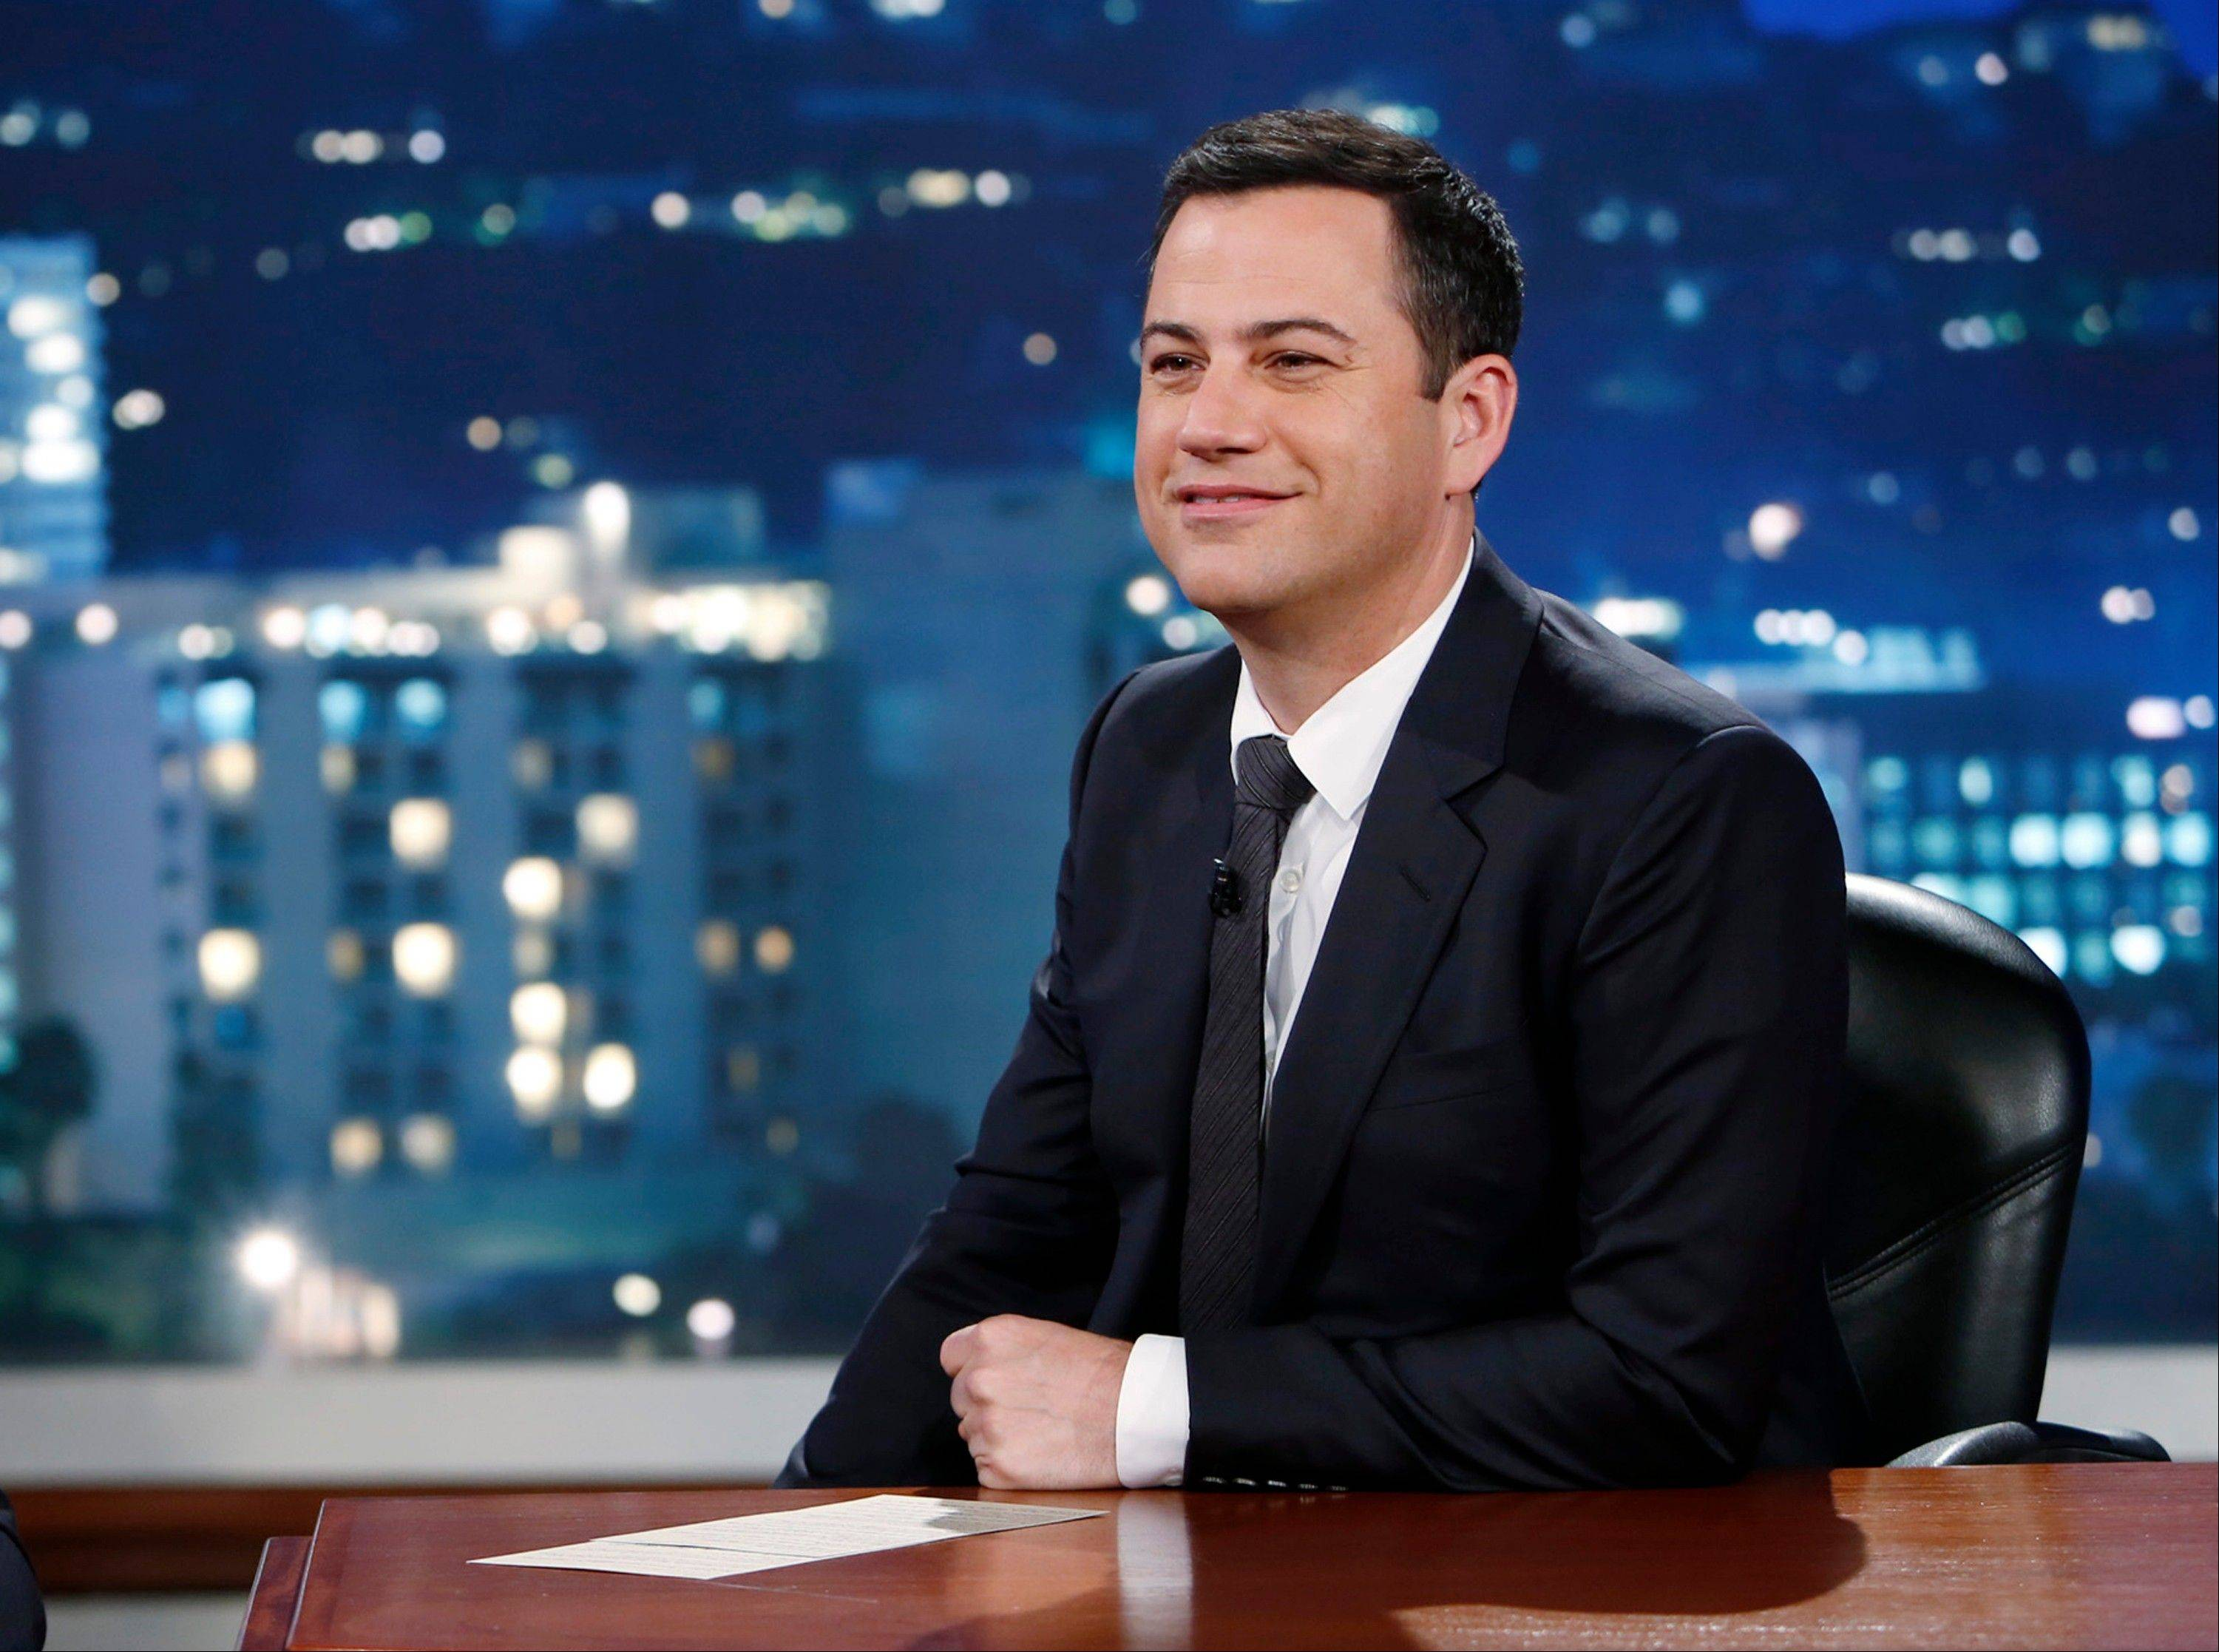 Not everyone finds Jimmy Kimmel�s annual Halloween prank funny.